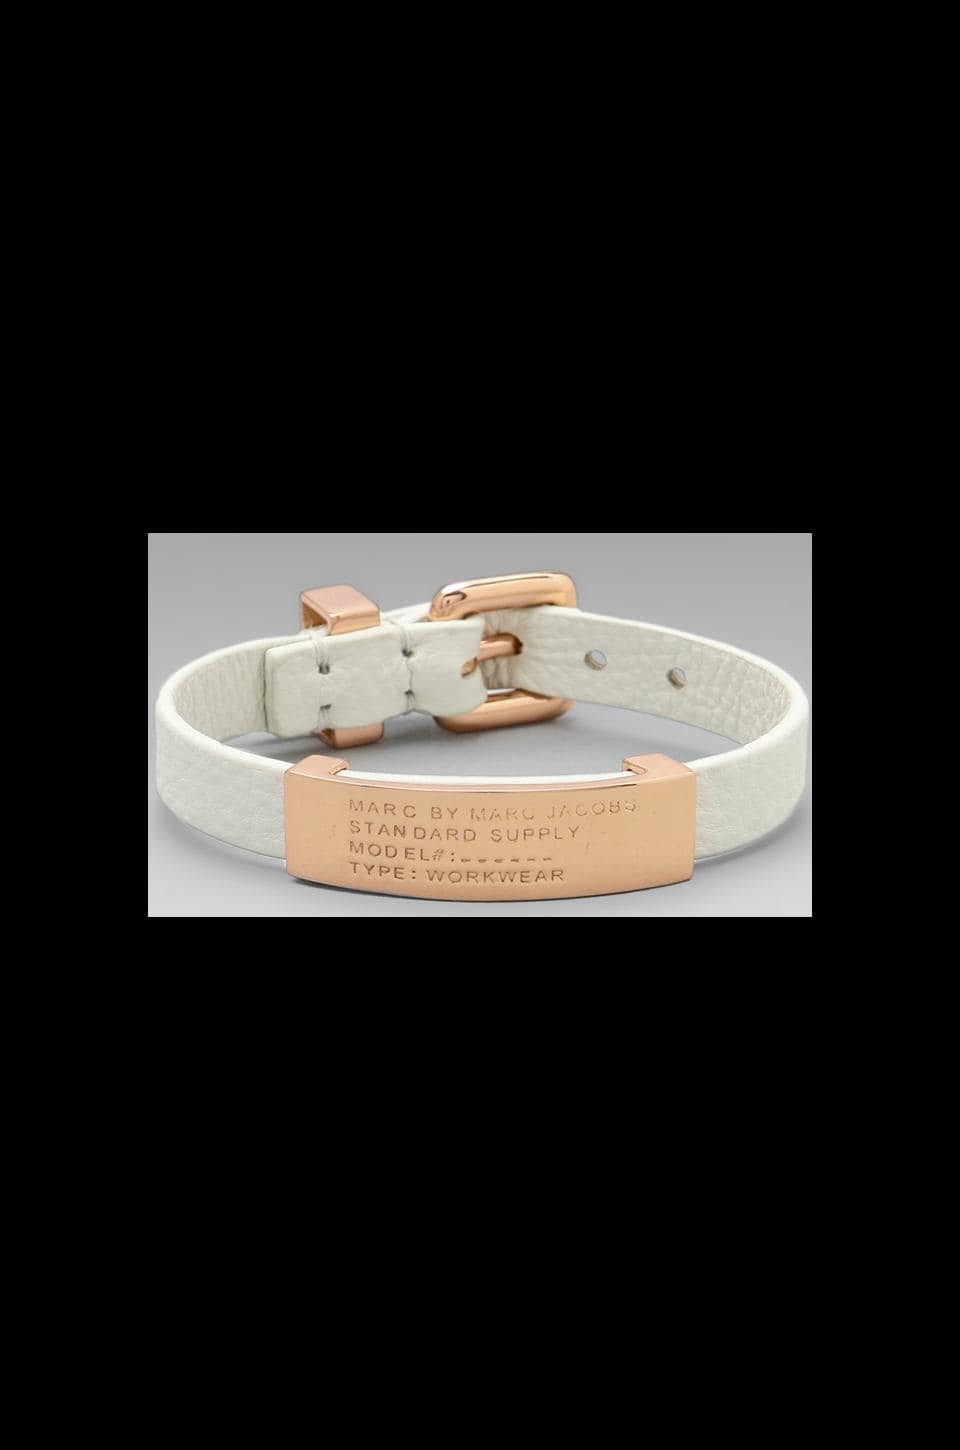 Marc by Marc Jacobs Leather Standard Supply ID Bracelet in White Birch